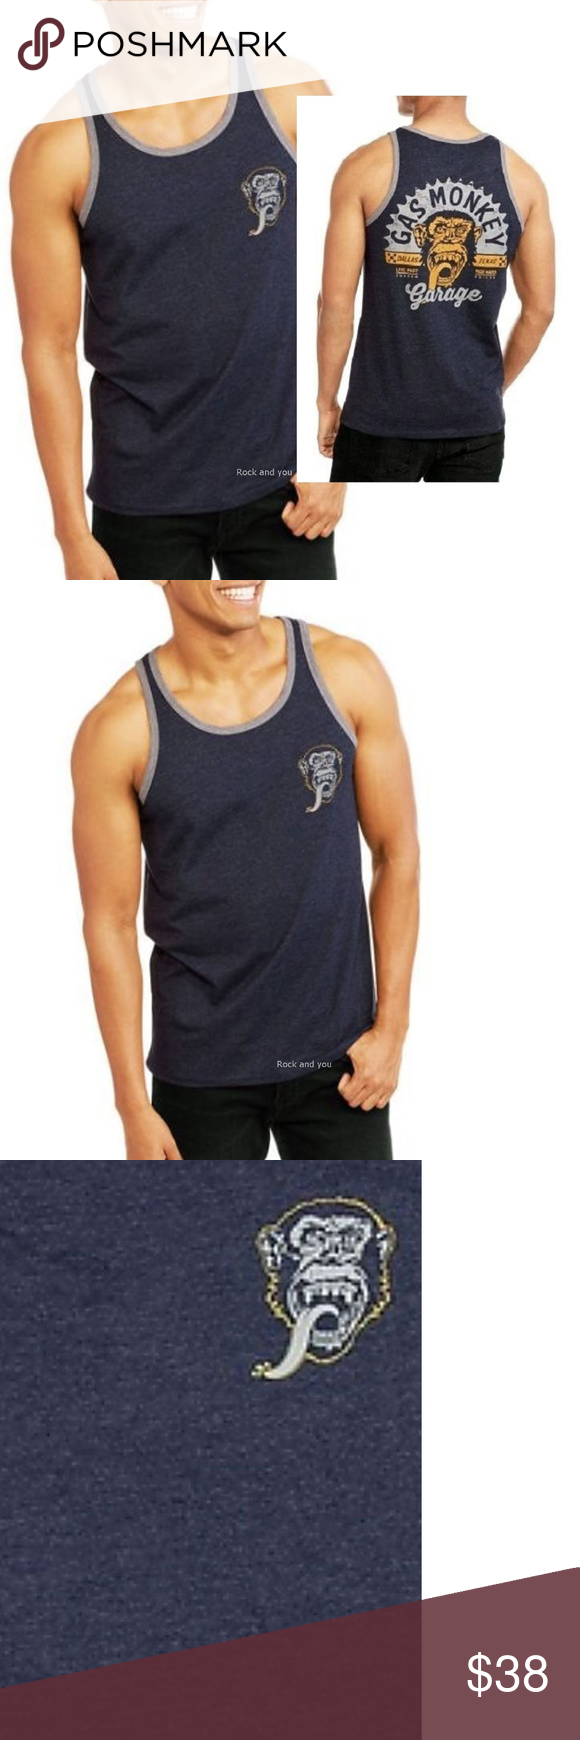 Gas Monkey Garage Tank Top Live Fast M NWT Heather Navy Muscle Top from Gas Monkey Garage with famous design. 60% Cotton, 40% Polyester.  Item Condition: New With Tag.  Pit to Pit: 20